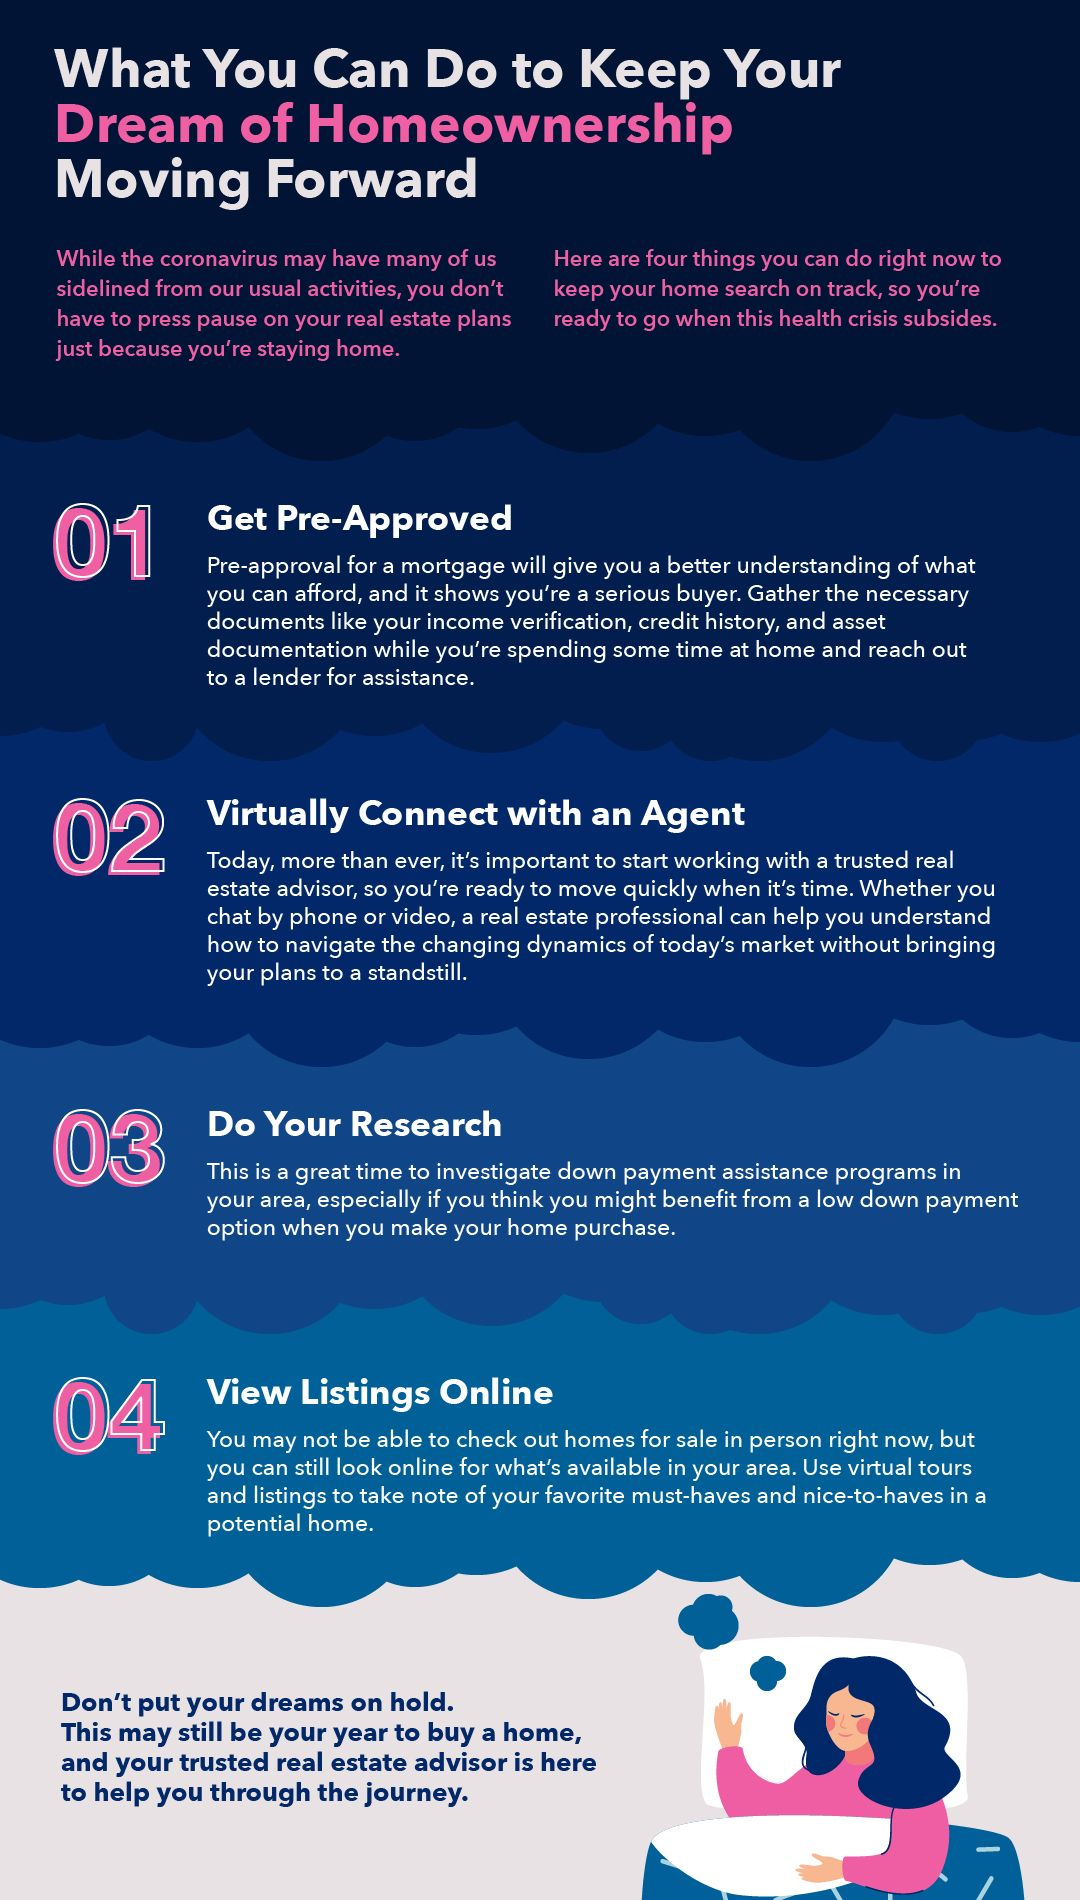 What You Can Do To Keep Your Dream Of Homeownership Moving Forward Infographic In 2020 Home Ownership What You Can Do Dreaming Of You